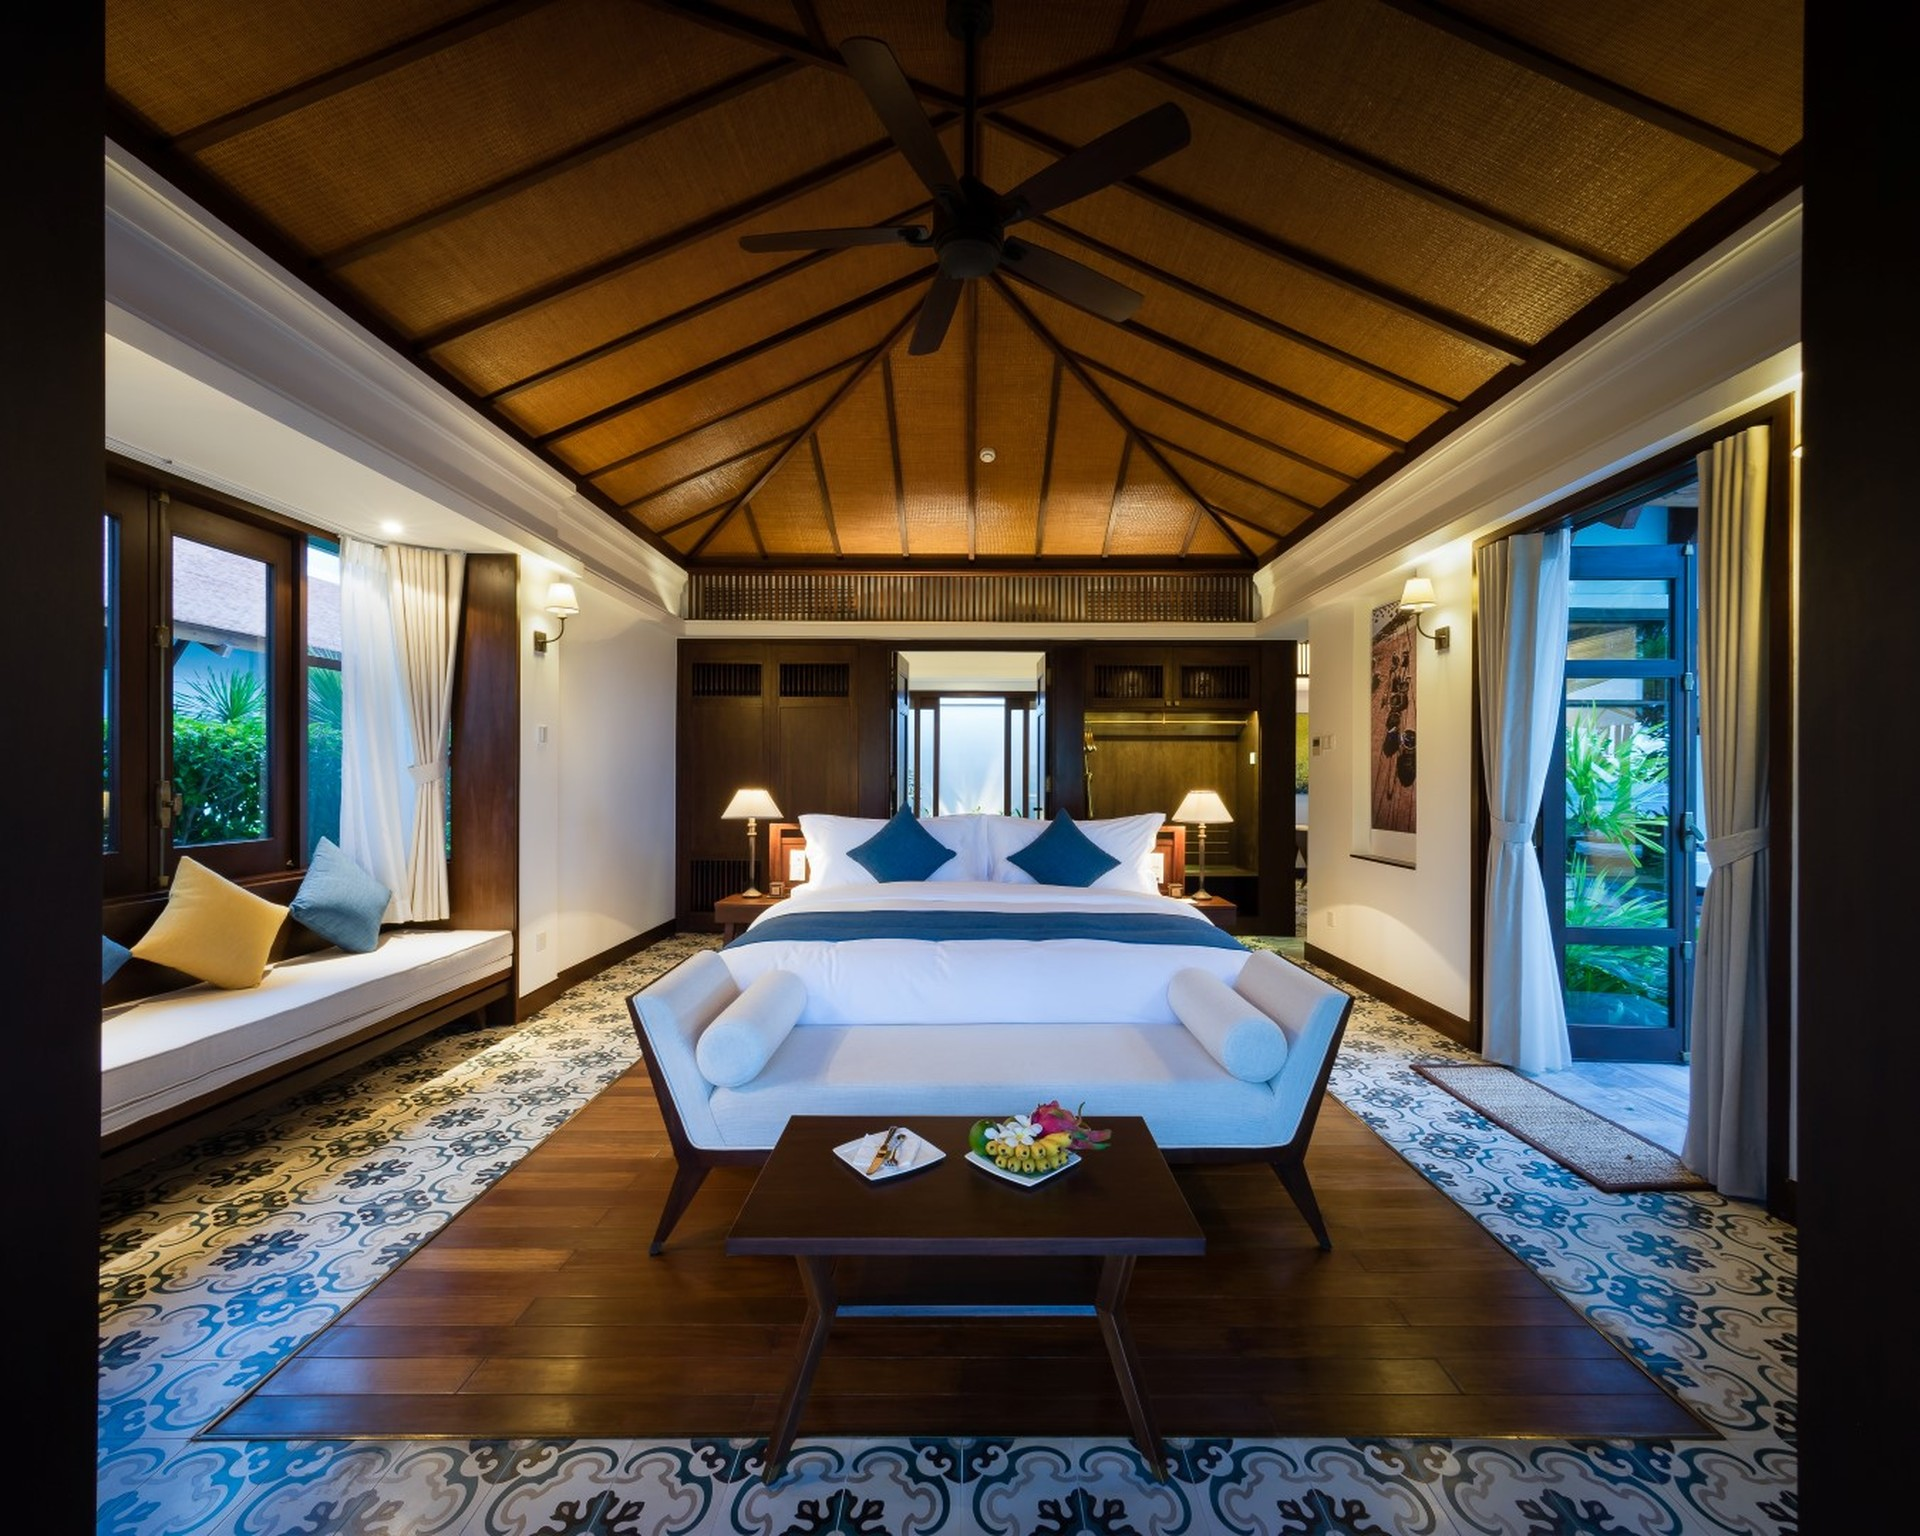 01 The Anam - Villas - Bed Room Villa with Pool (Large).jpg